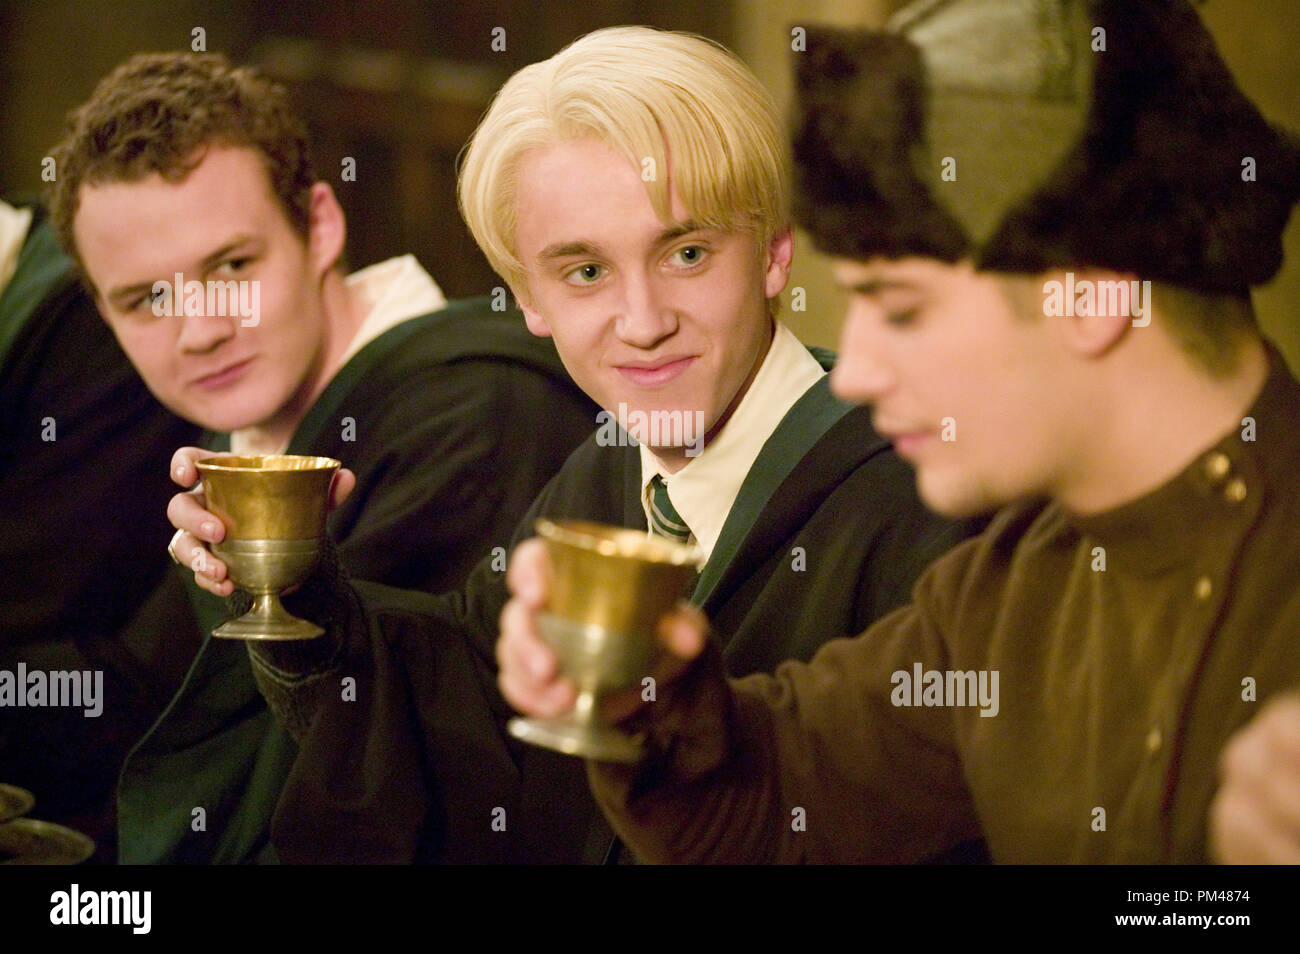 Warner Brothers Pictures Presents Harry Potter And The Goblet Of Fire Joshua Herdman Tom Felton Stanislav Ianevski C 2005 Warner Brothers Stock Photo Alamy Play harry potter quizzes on sporcle, the world's largest quiz community. https www alamy com warner brothers pictures presents harry potter and the goblet of fire joshua herdman tom felton stanislav ianevski 2005 warner brothers image218911816 html